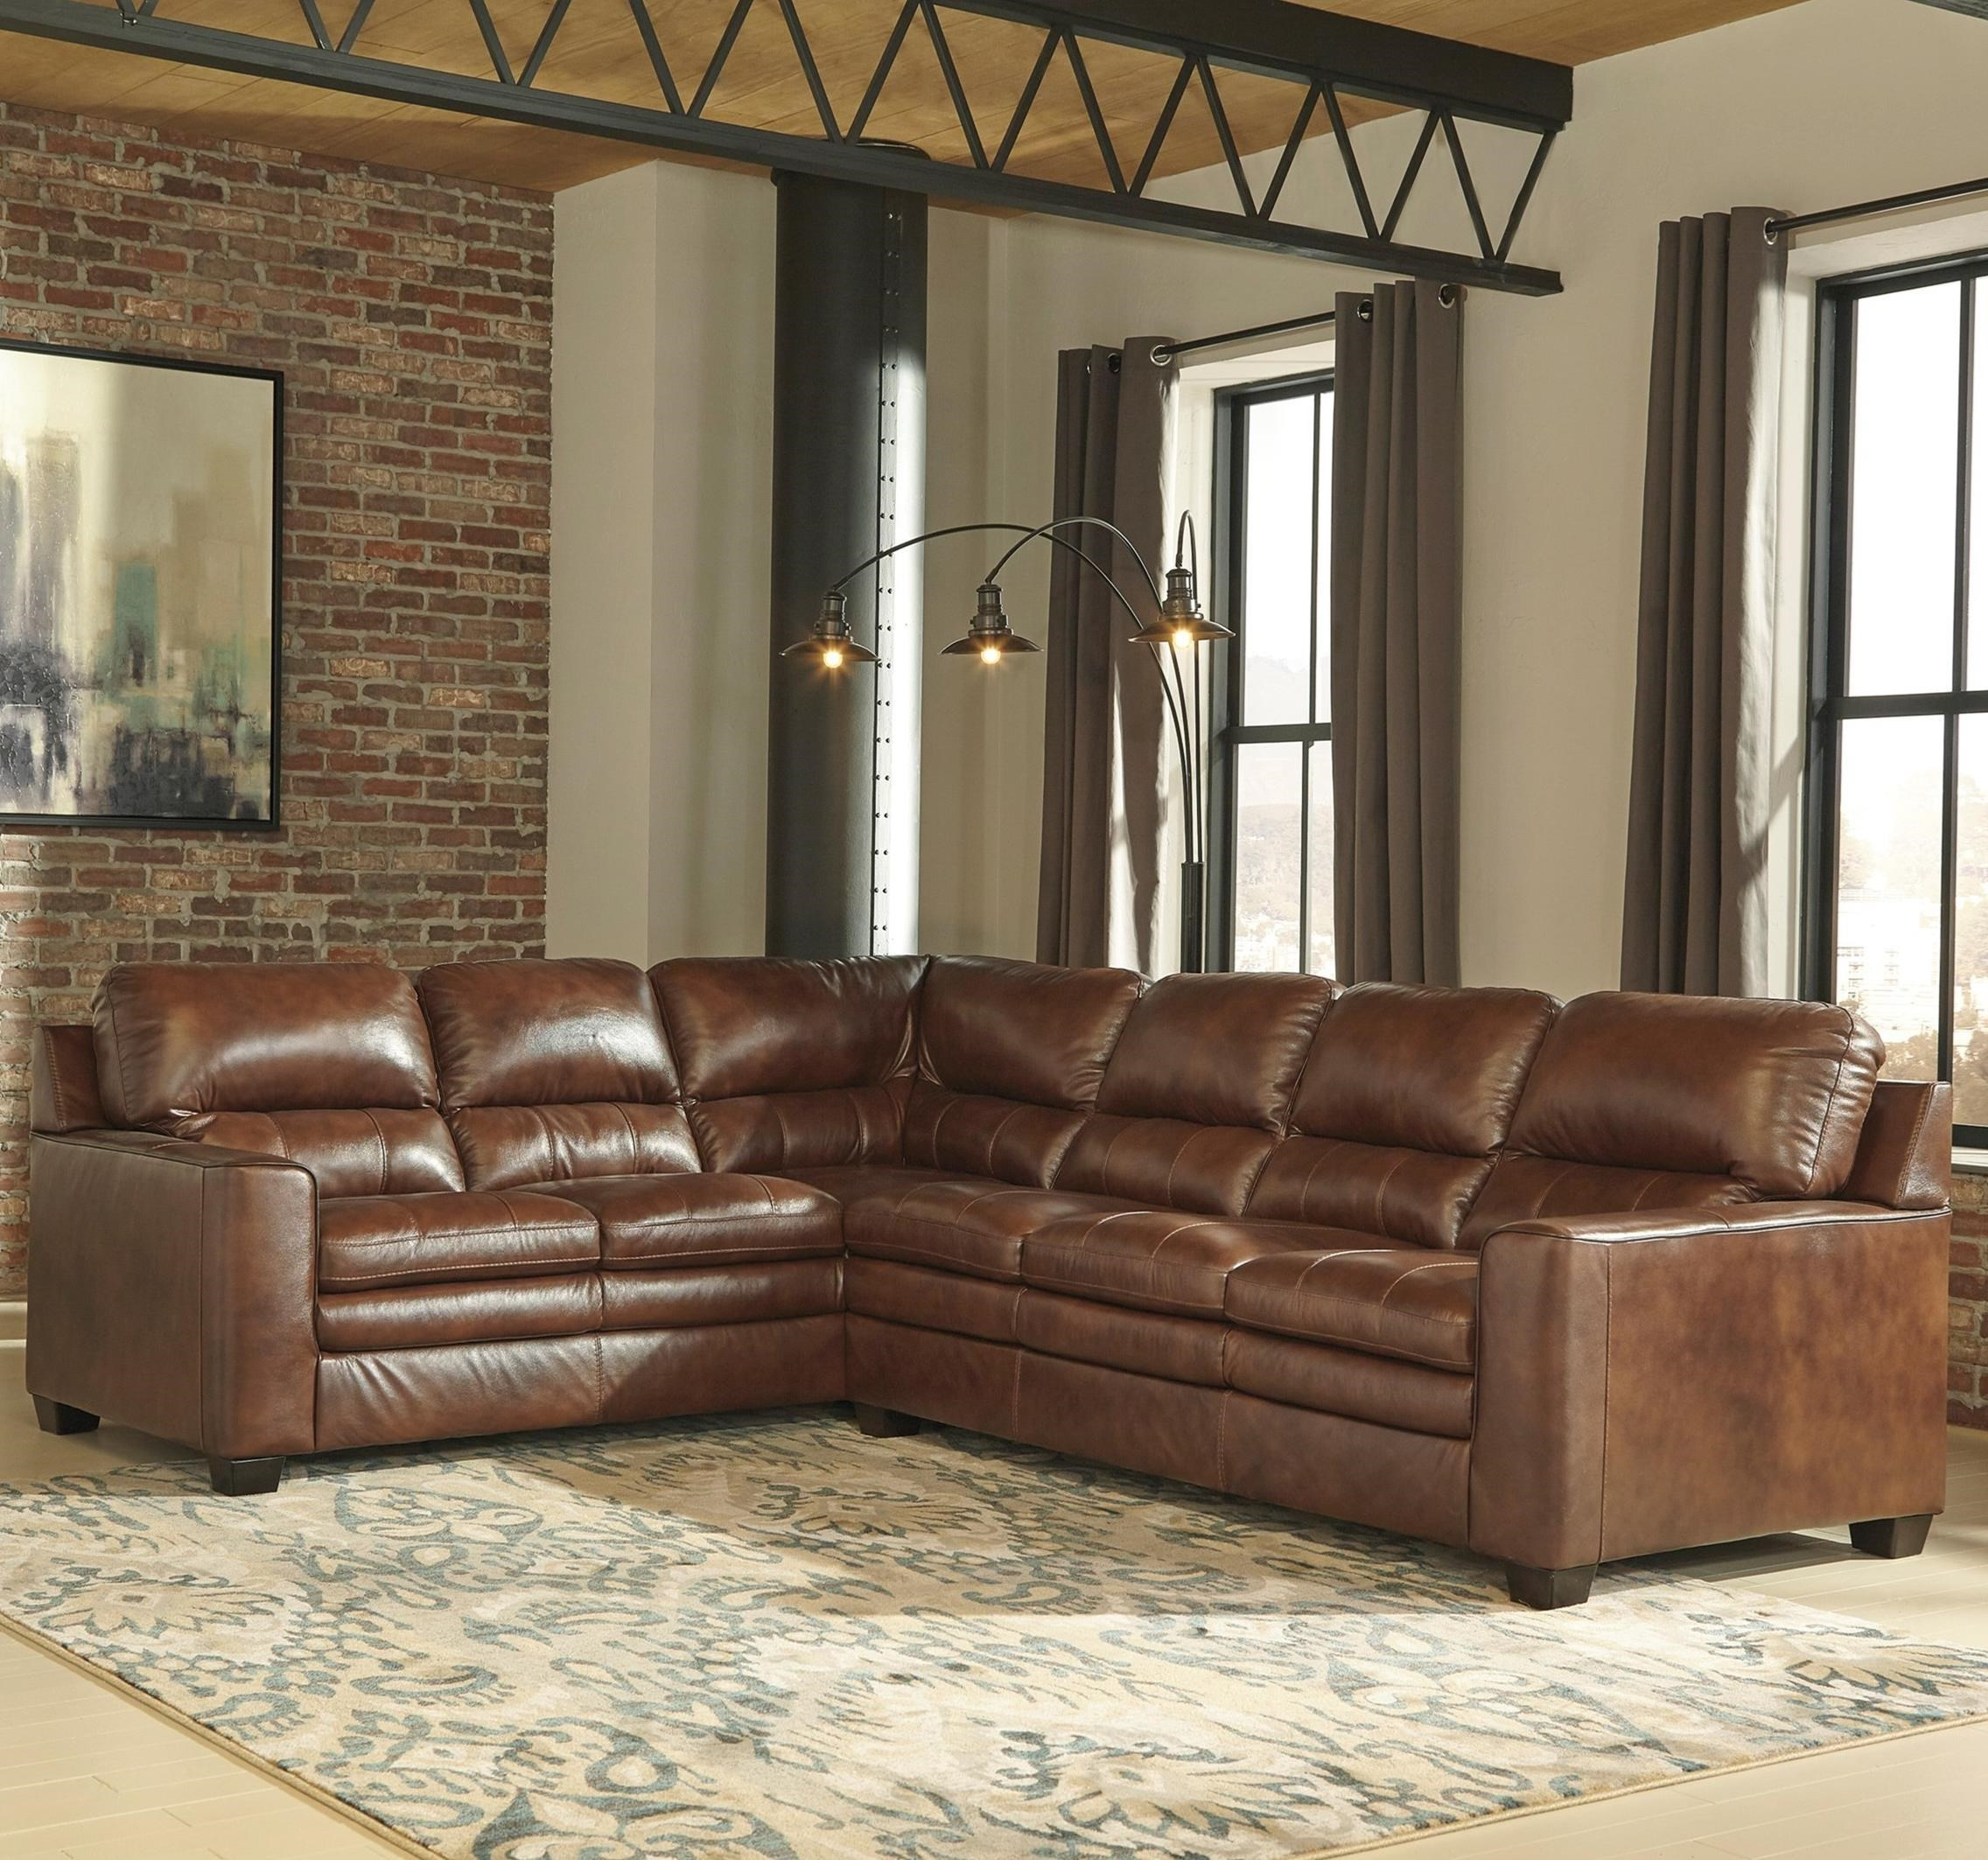 Signature Design By Ashley Gleason Leather Match L Shape Sectional